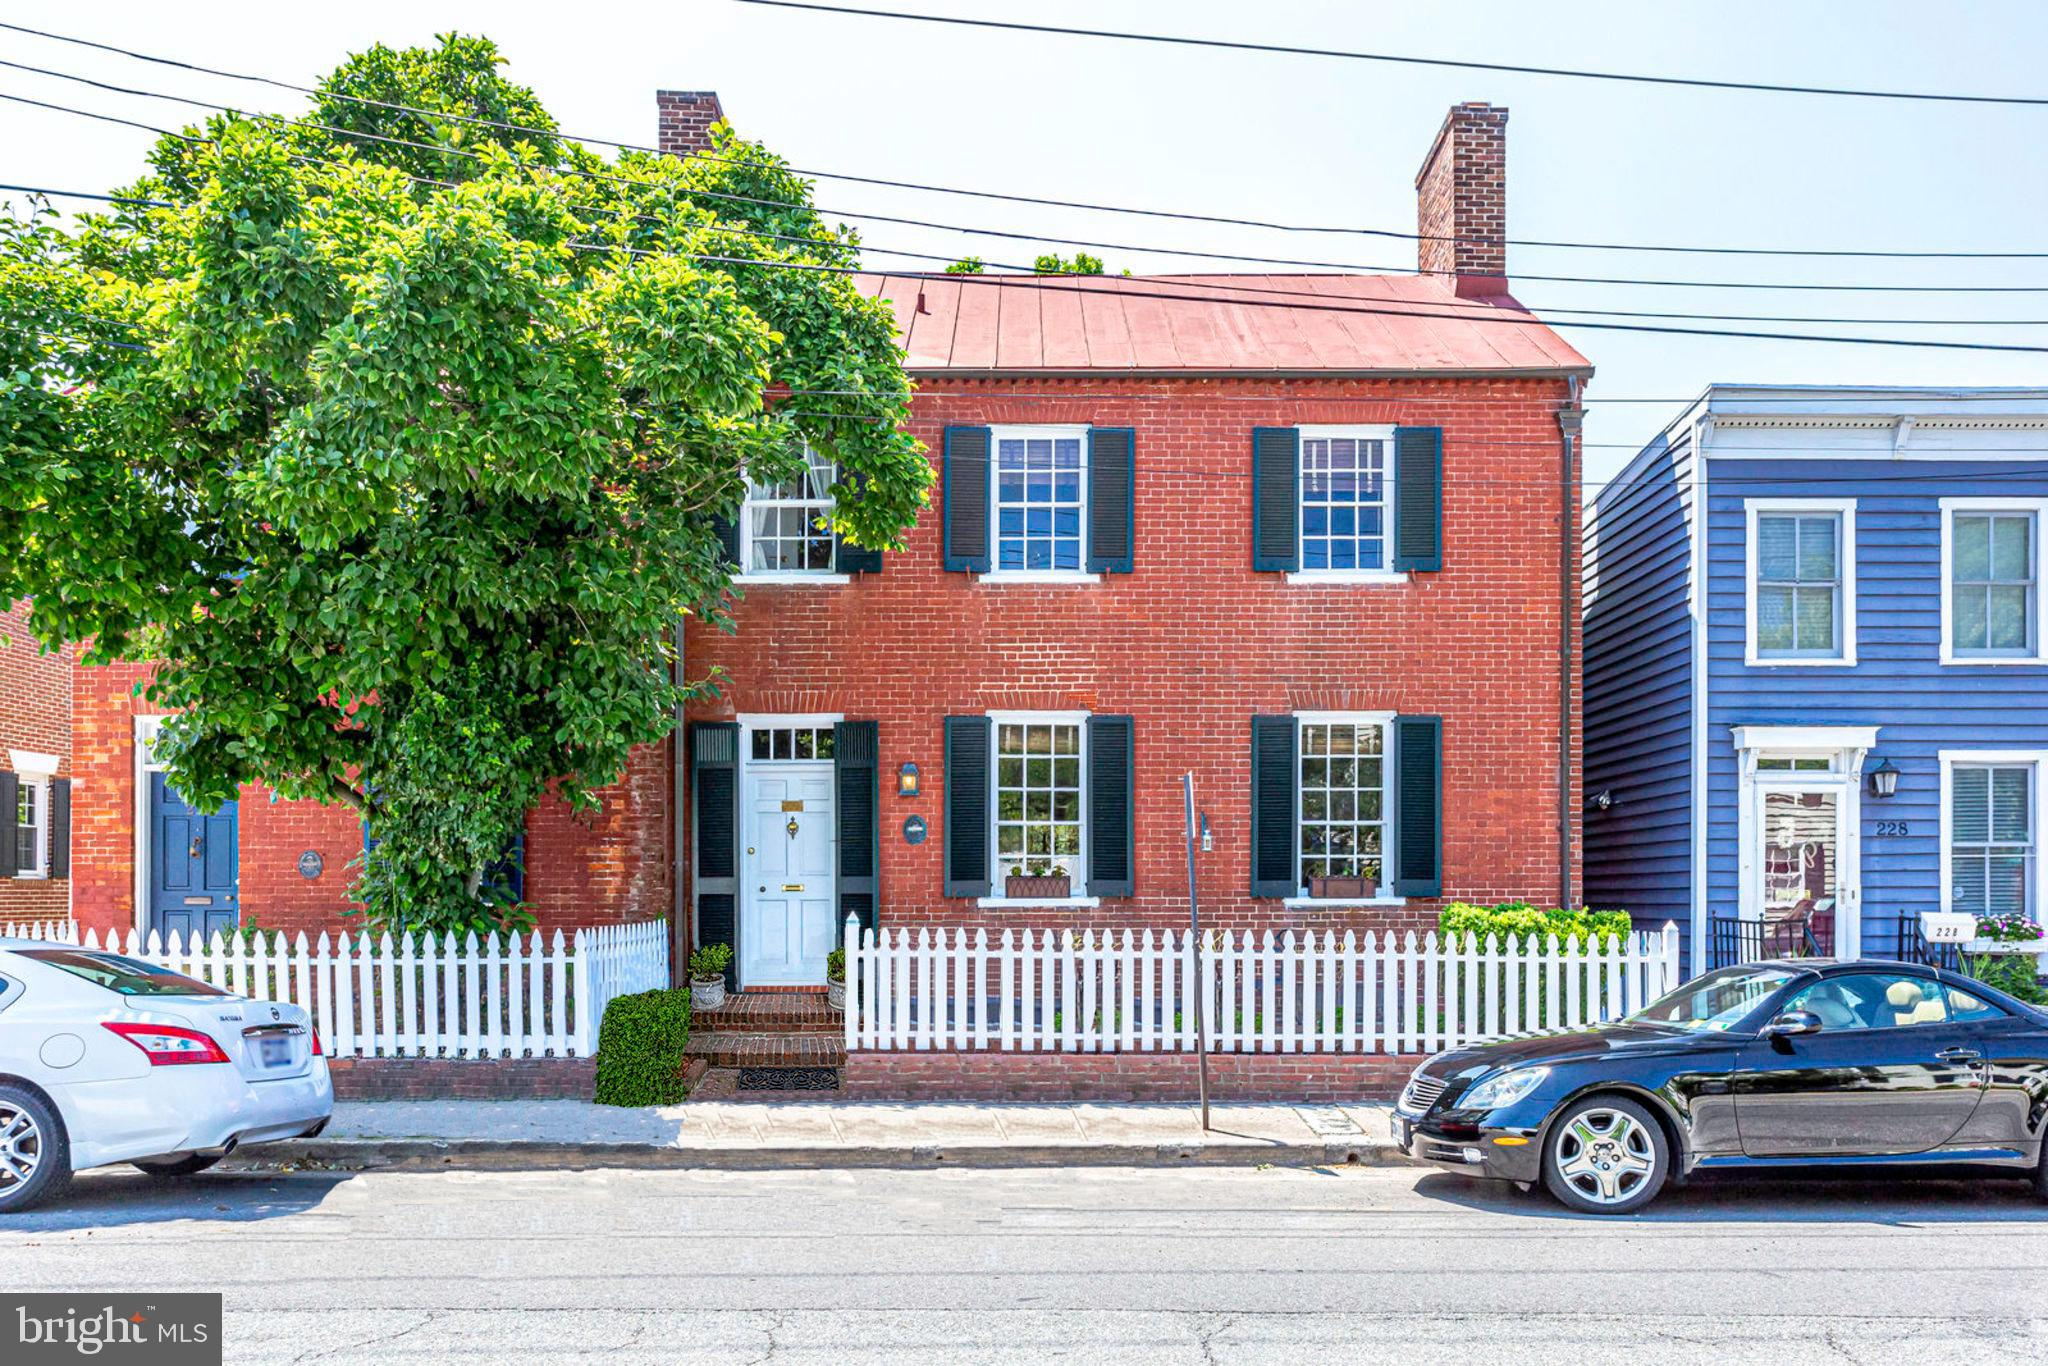 Beautifully restored 18th Century home in the heart of Old Town Alexandria! Semi-detached townhouse, 3BR, 2.5BA. 2 blocks to King St shops and restaurants! Gorgeous 9ft ceilings, grand reception rooms with 4 wood-burning fireplaces. Wide plank original hardwood floors, exquisite moldings, exposed beams and brickwork. Large private garden and patio. Own a piece of history!